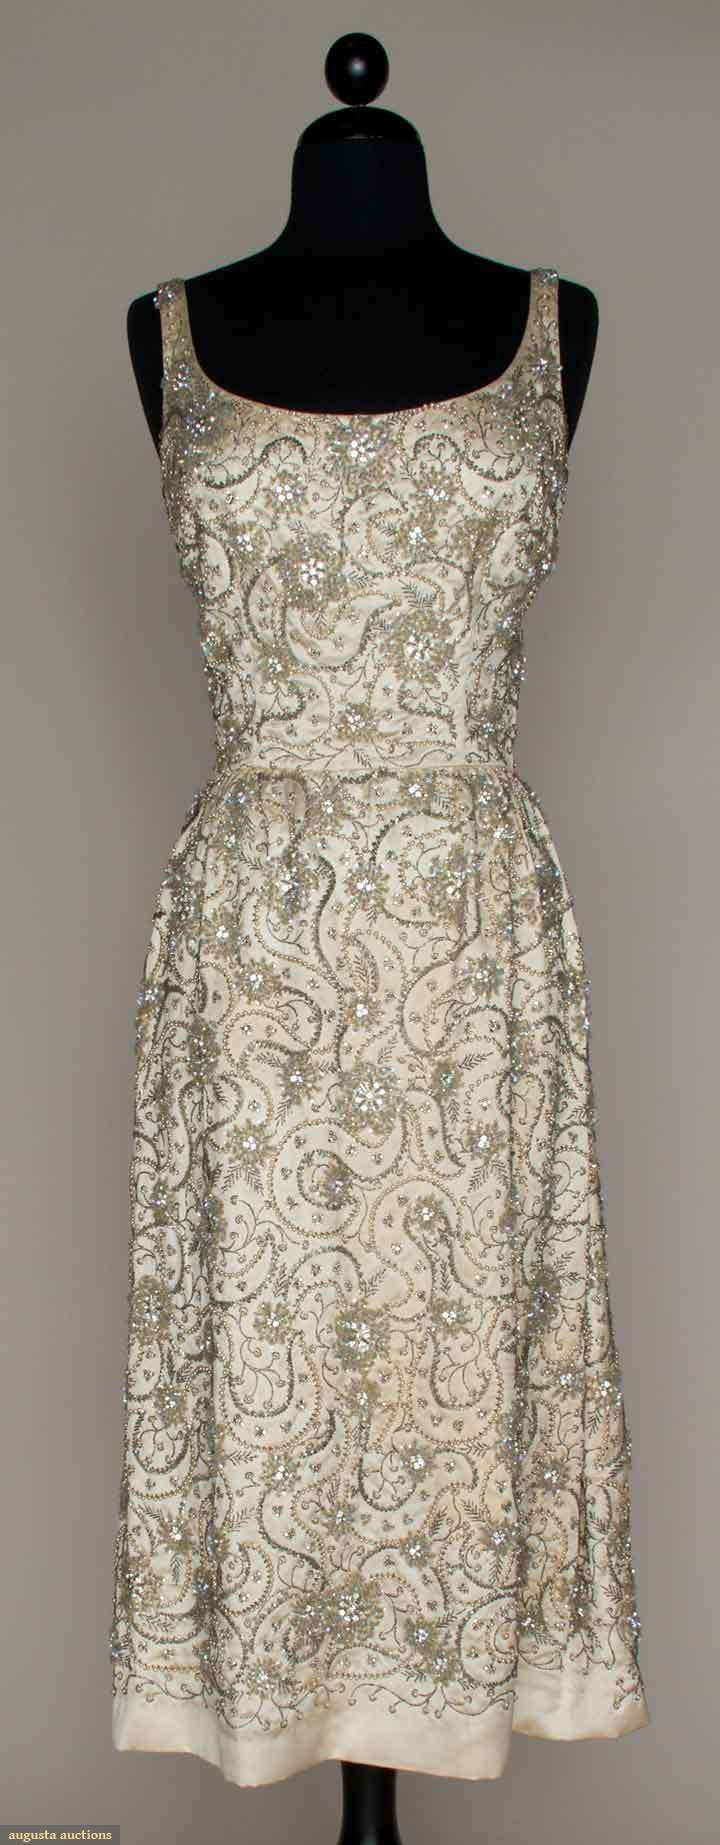 Jewel Encrusted Dress - 1950's - White silk satin covered in silver sequins, irridescent crystal beads, rhinestones & pearl ropes - Property of singer Maria Ellington Cole, Mrs. Nat King Cole - Augusta Auctions - @~ Mlle